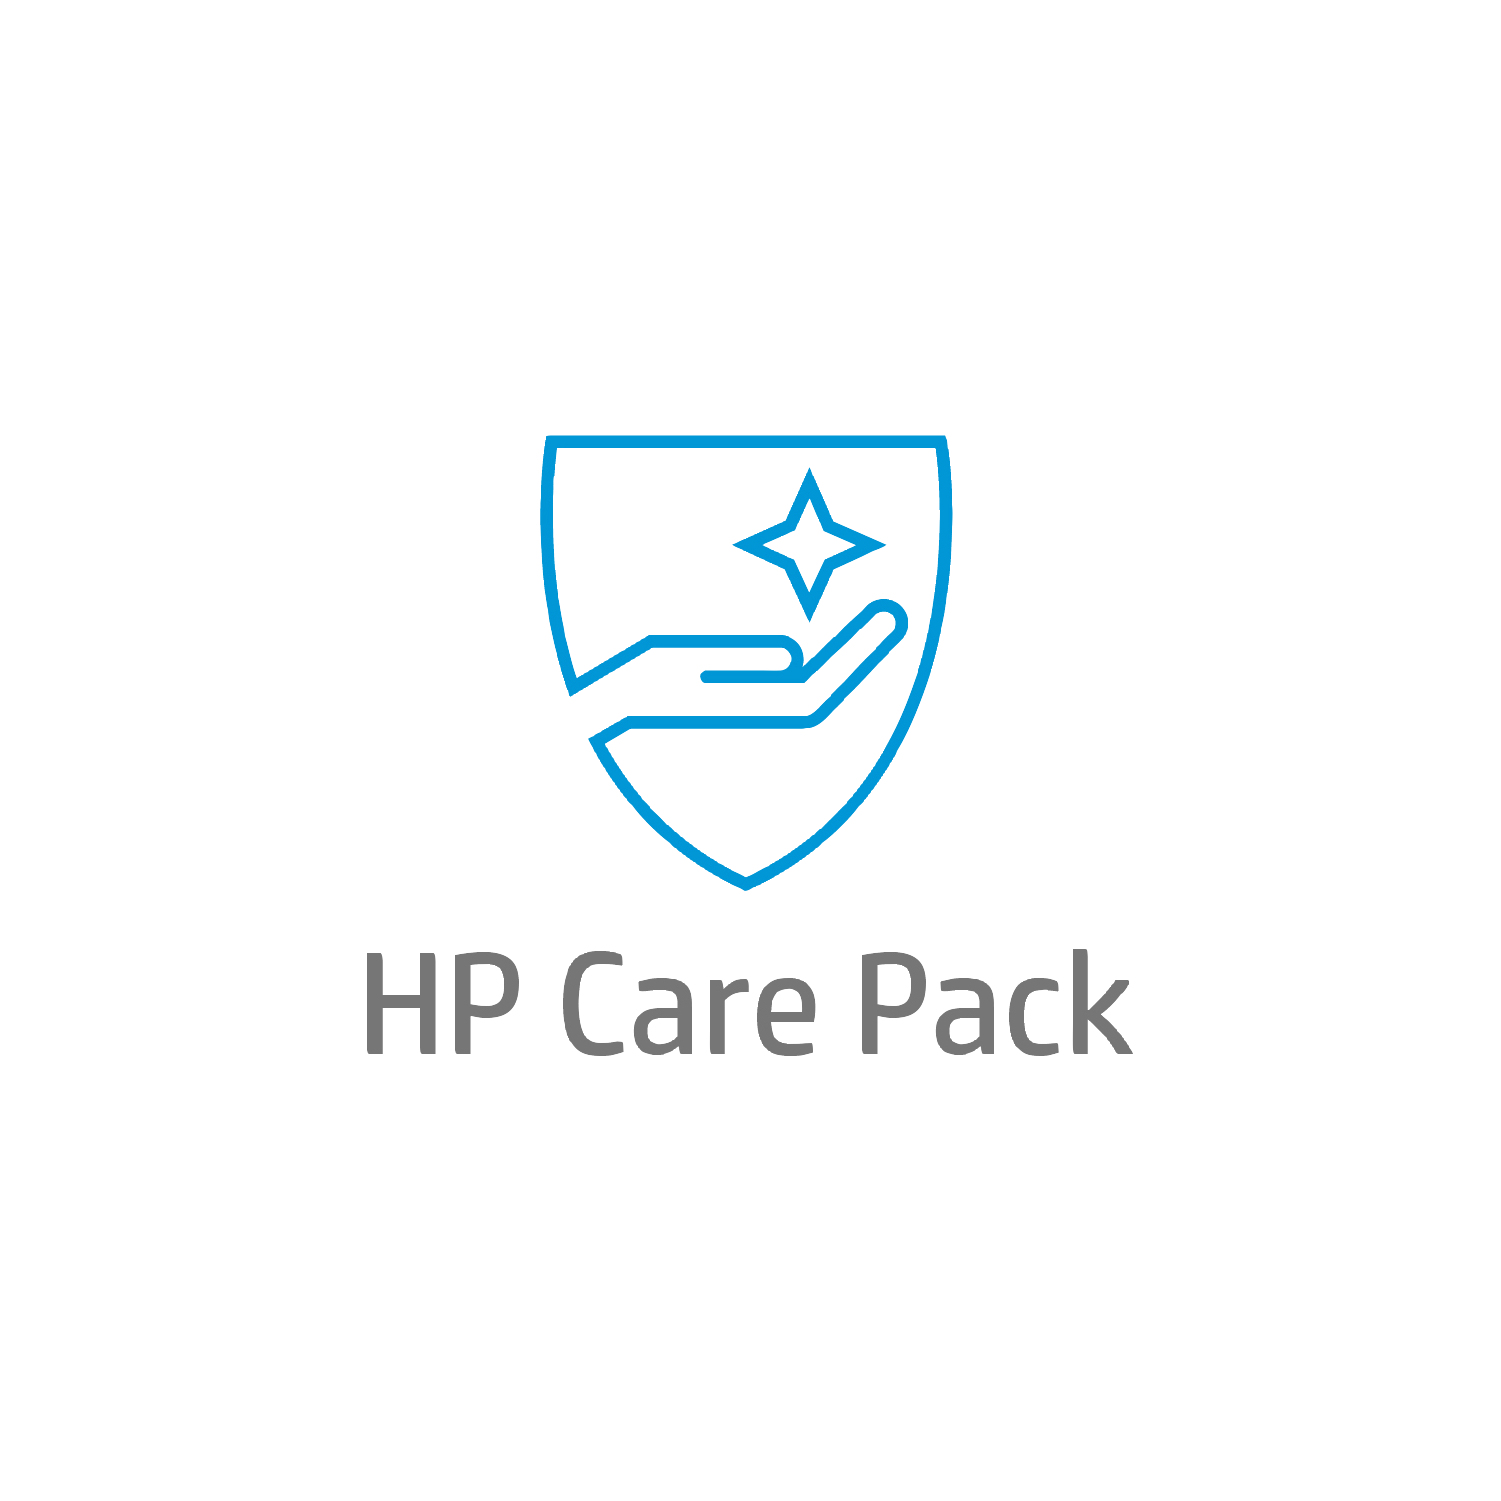 HP 5 year Premier Care Essential Hardware Support for Notebooks